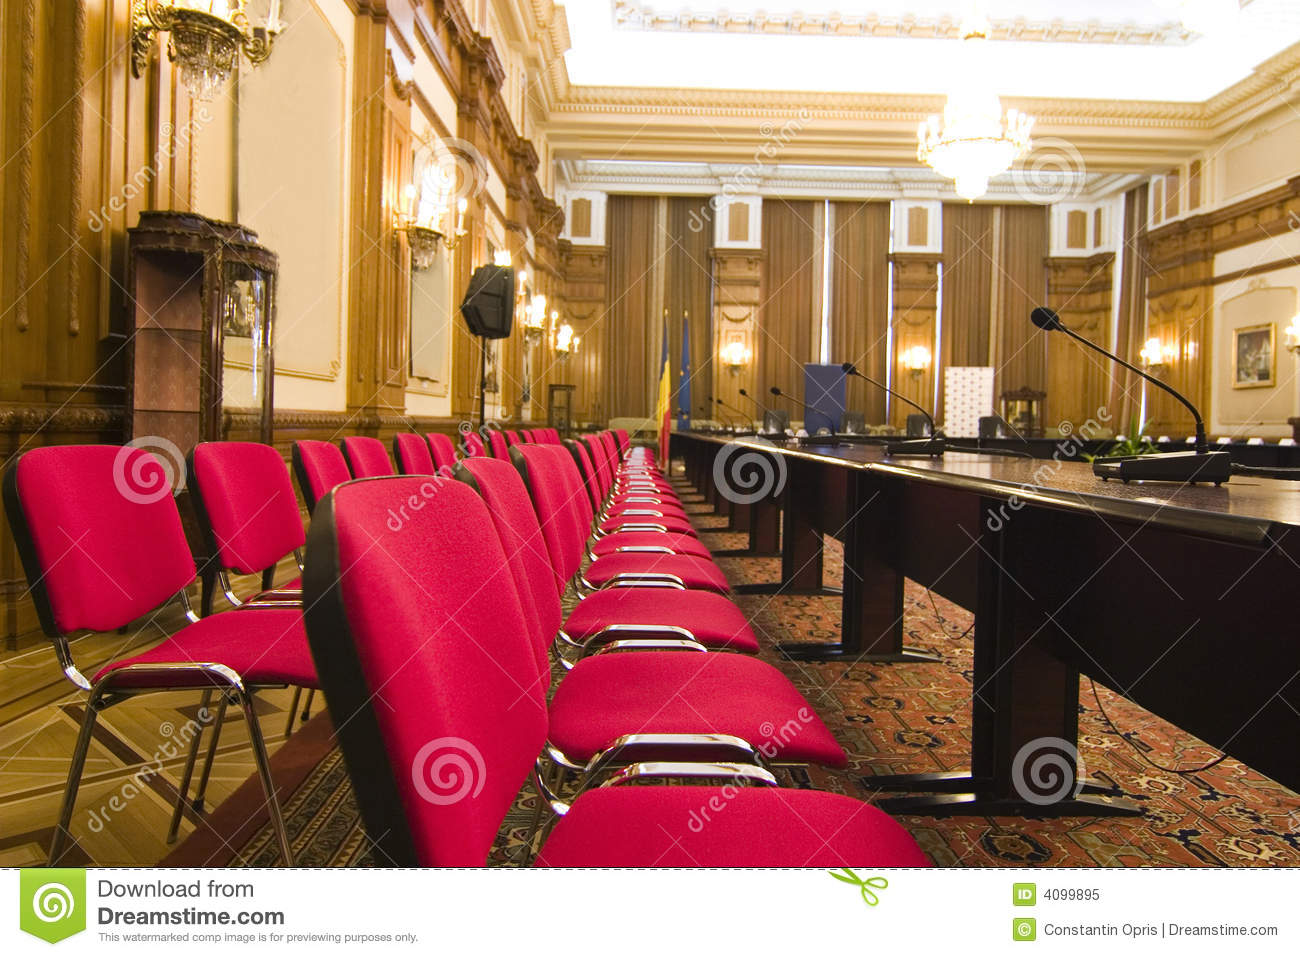 Seats in conference room